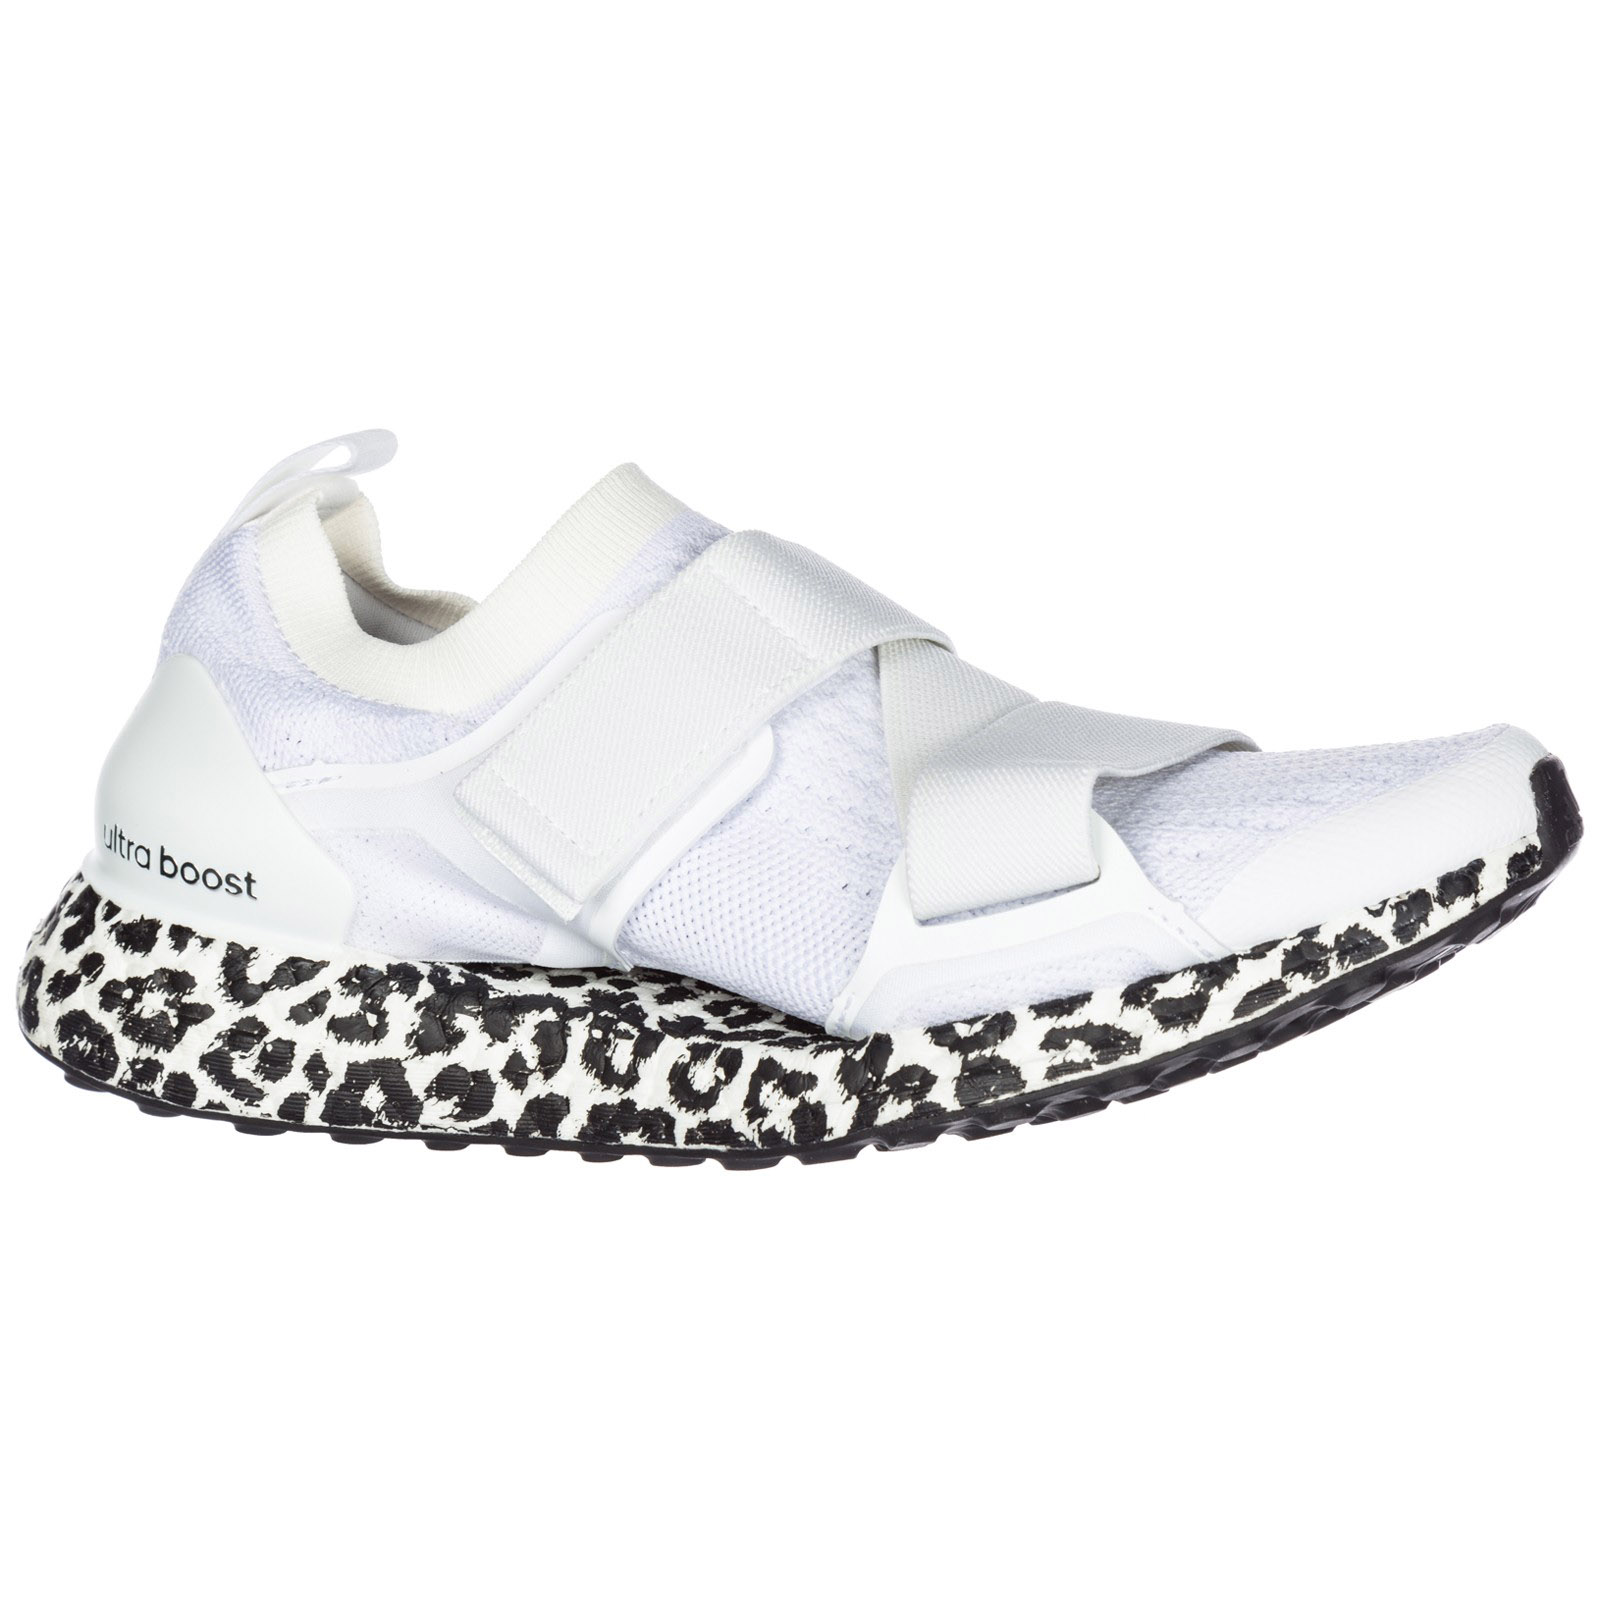 Basket Adidas by Stella McCartney Ultraboost X AC7548 cloud white ... 25dd10fa05e